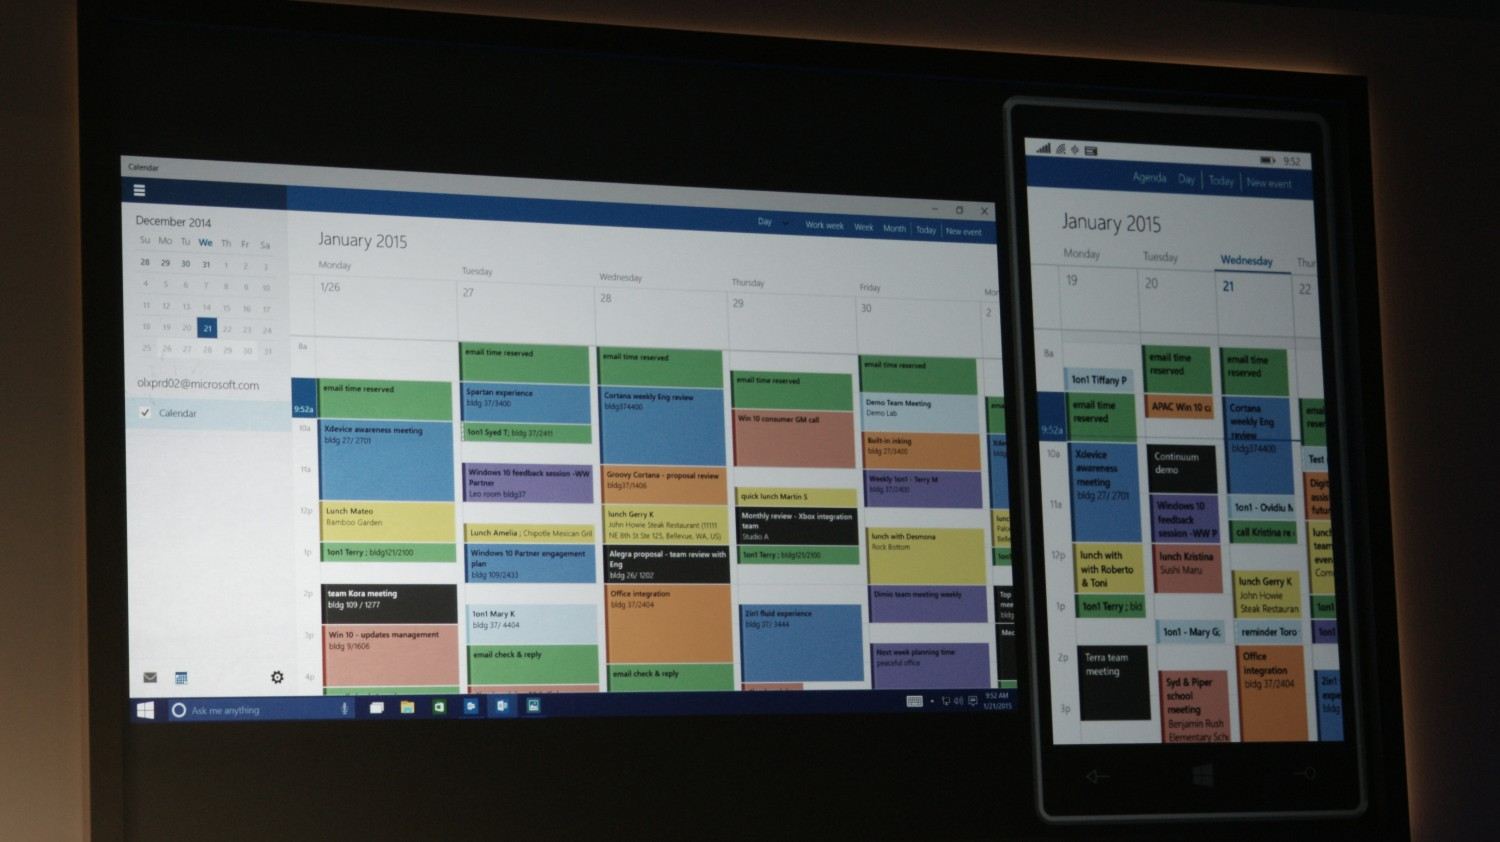 ... at its Windows 10 event in one handy list